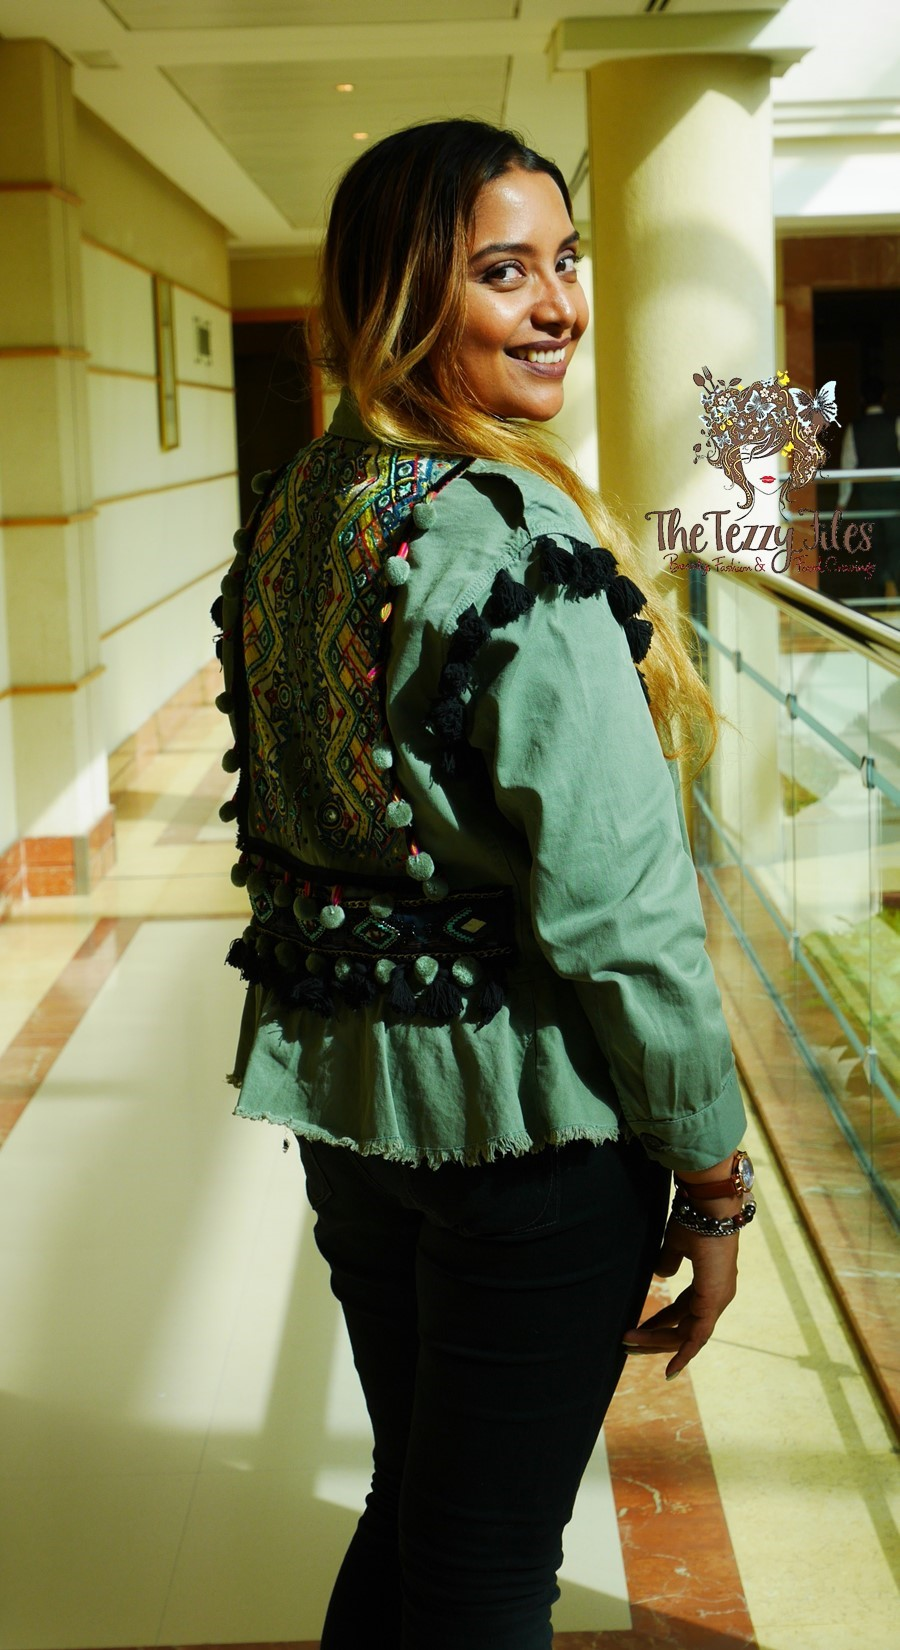 Zara Ethnic Tribal Khaki Jacket Dubai Fashion Blog The Tezzy Files Blogger UAE Indian Embroidery Mirror Work Jacket Casual